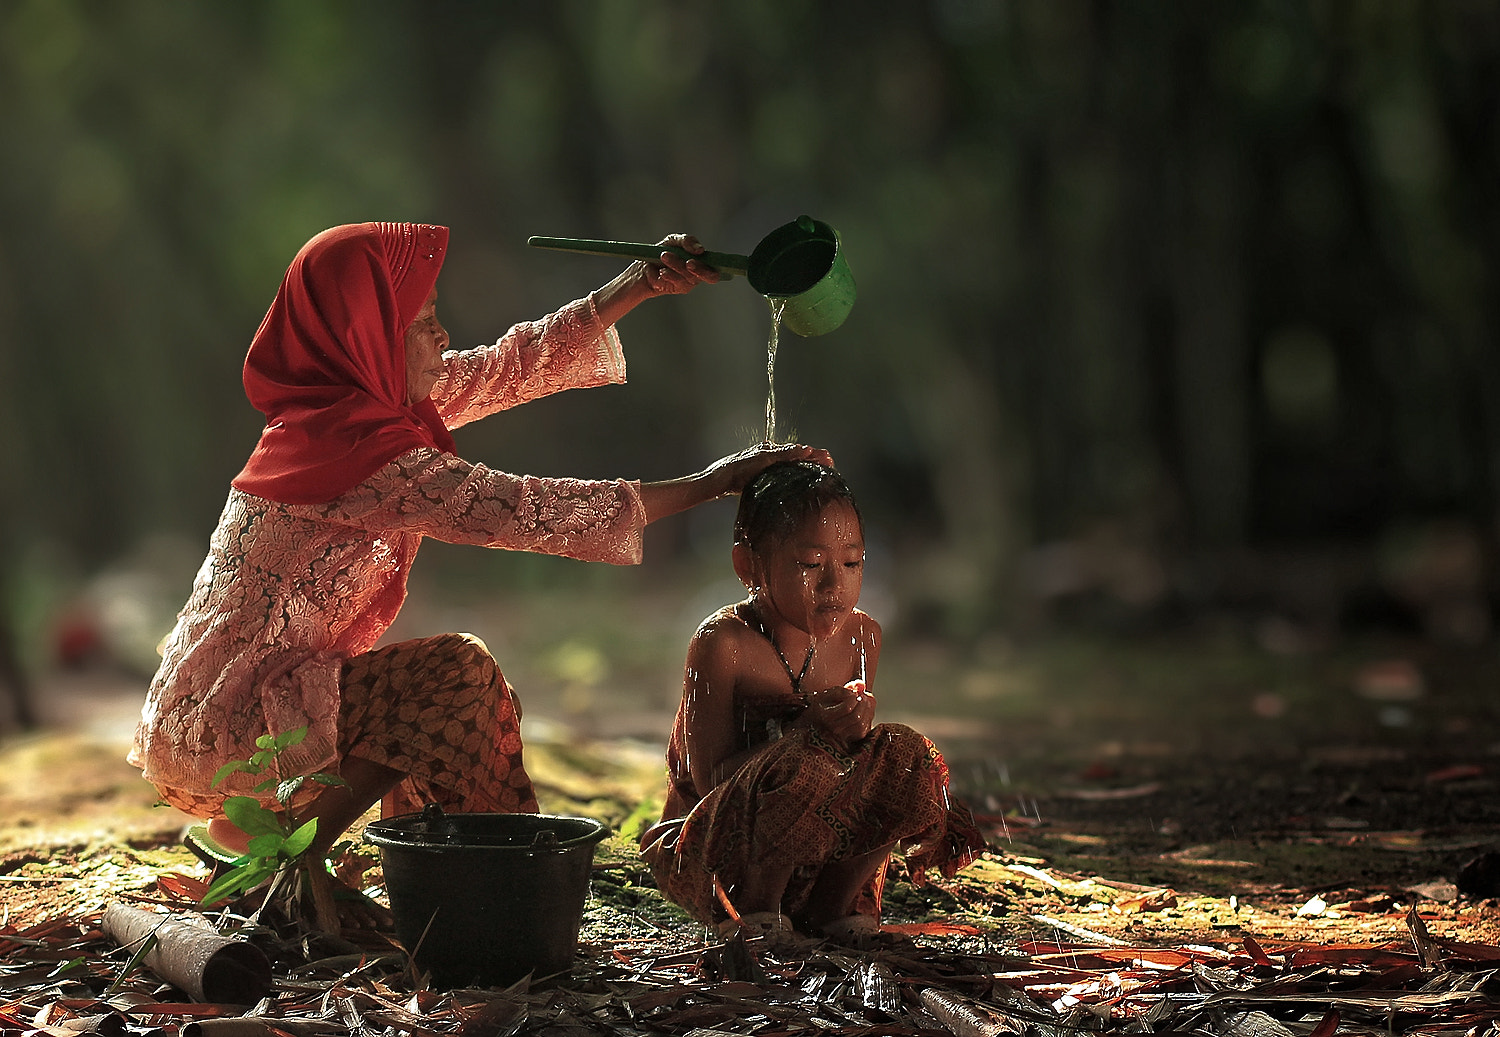 Photograph Morning Showers by Herman Damar on 500px